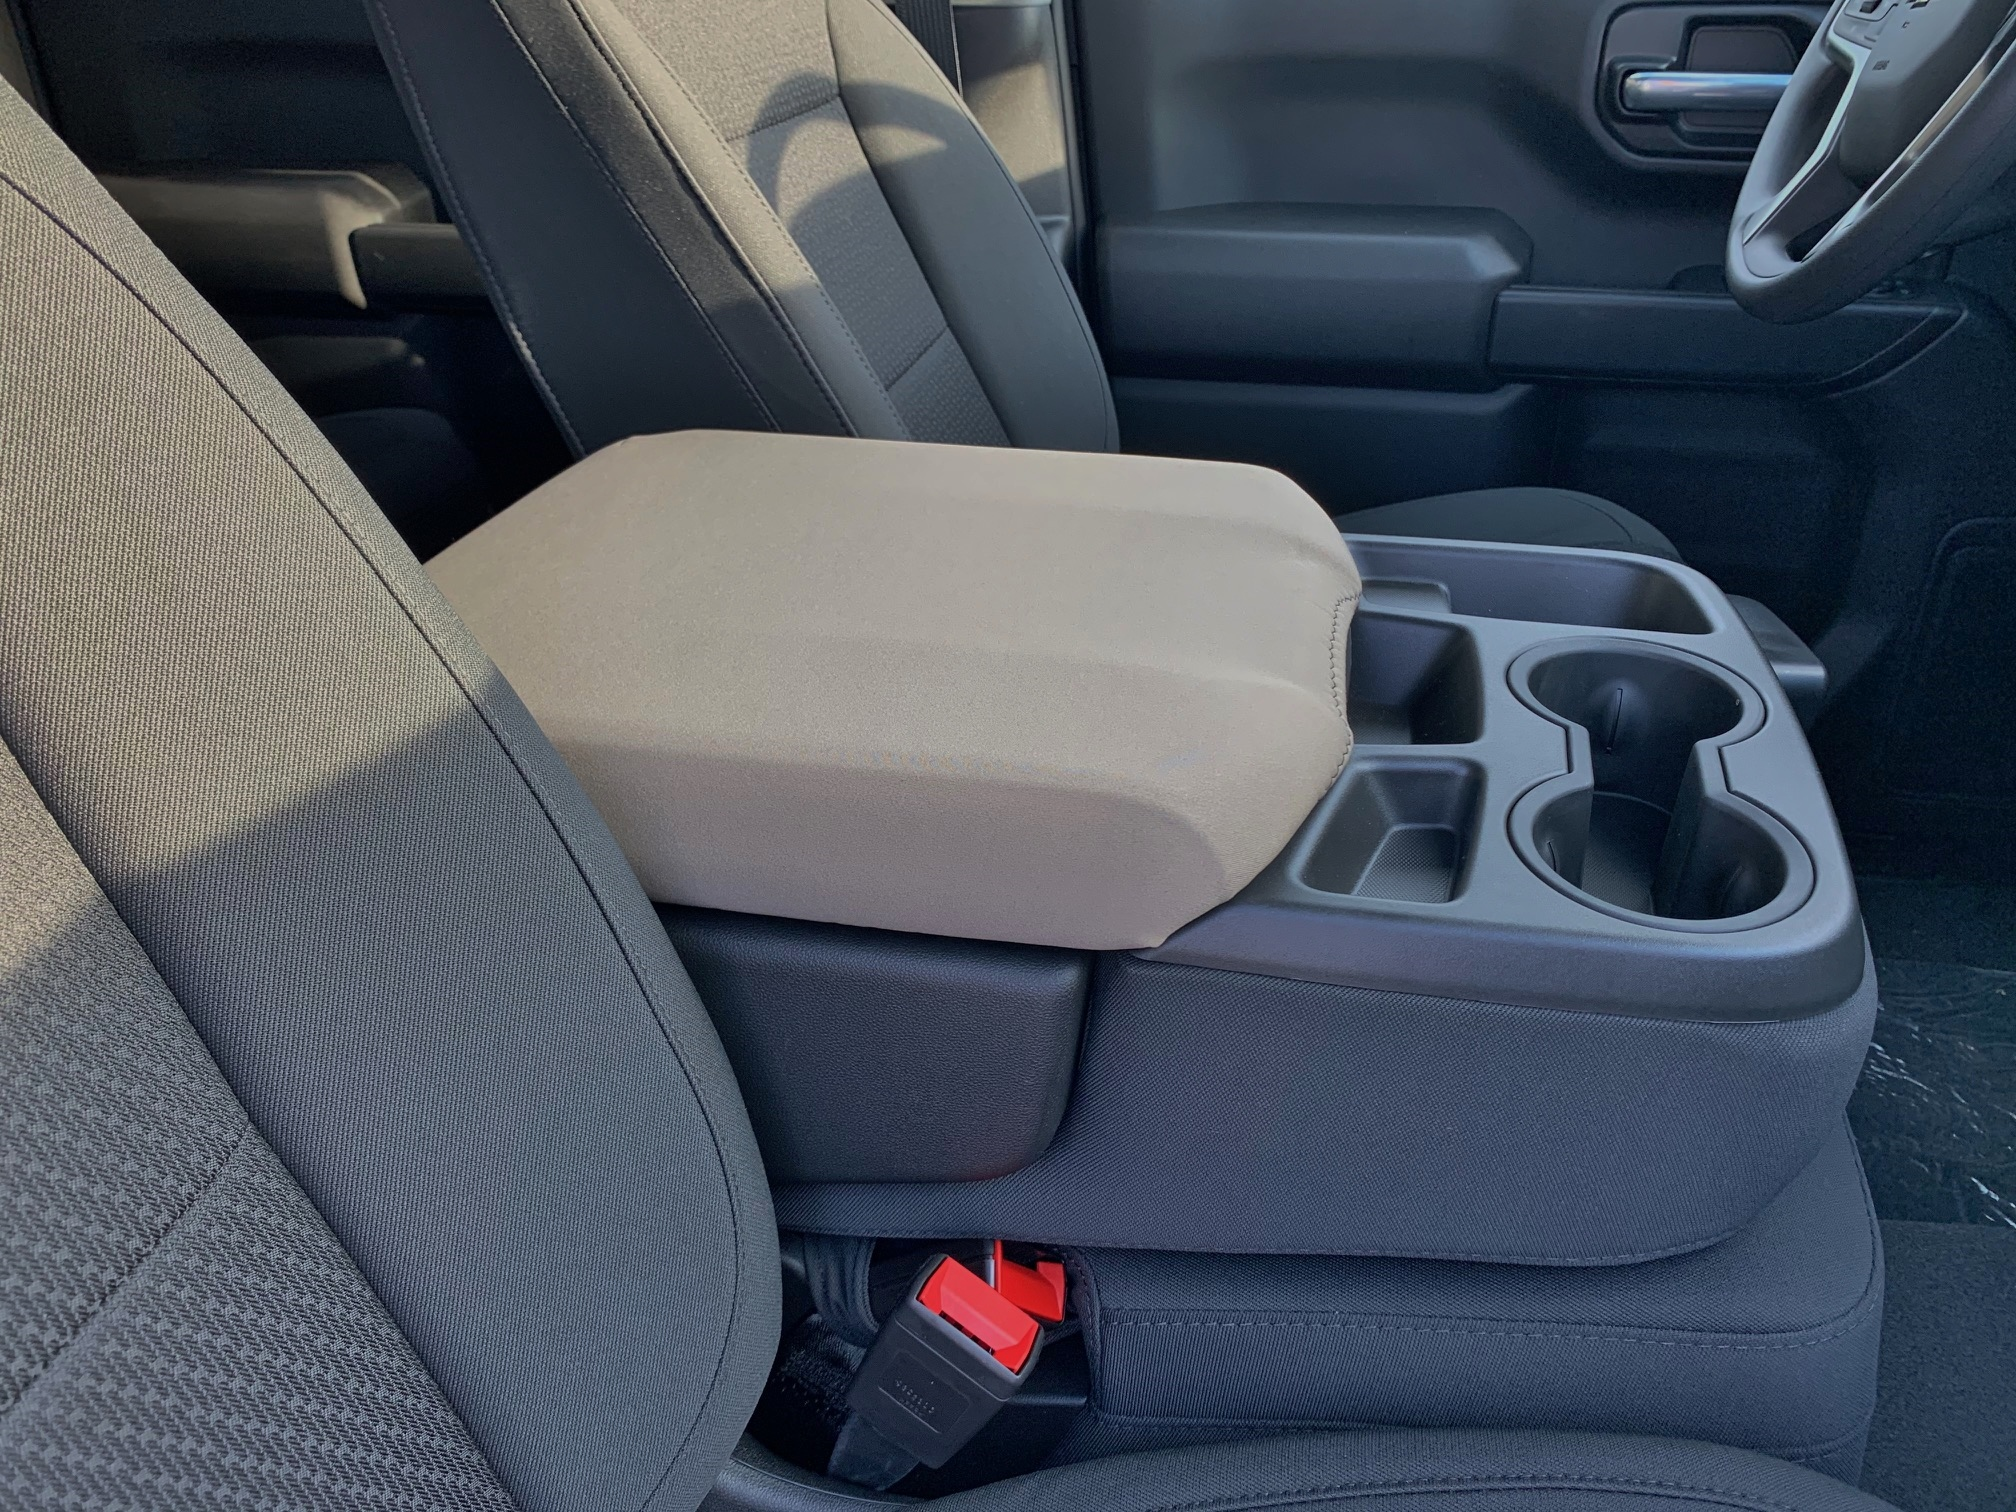 Buy Neoprene Center Console Armrest Cover Fits the Chevrolet Silverado RST 1500, 2500, 3500 2020-2021